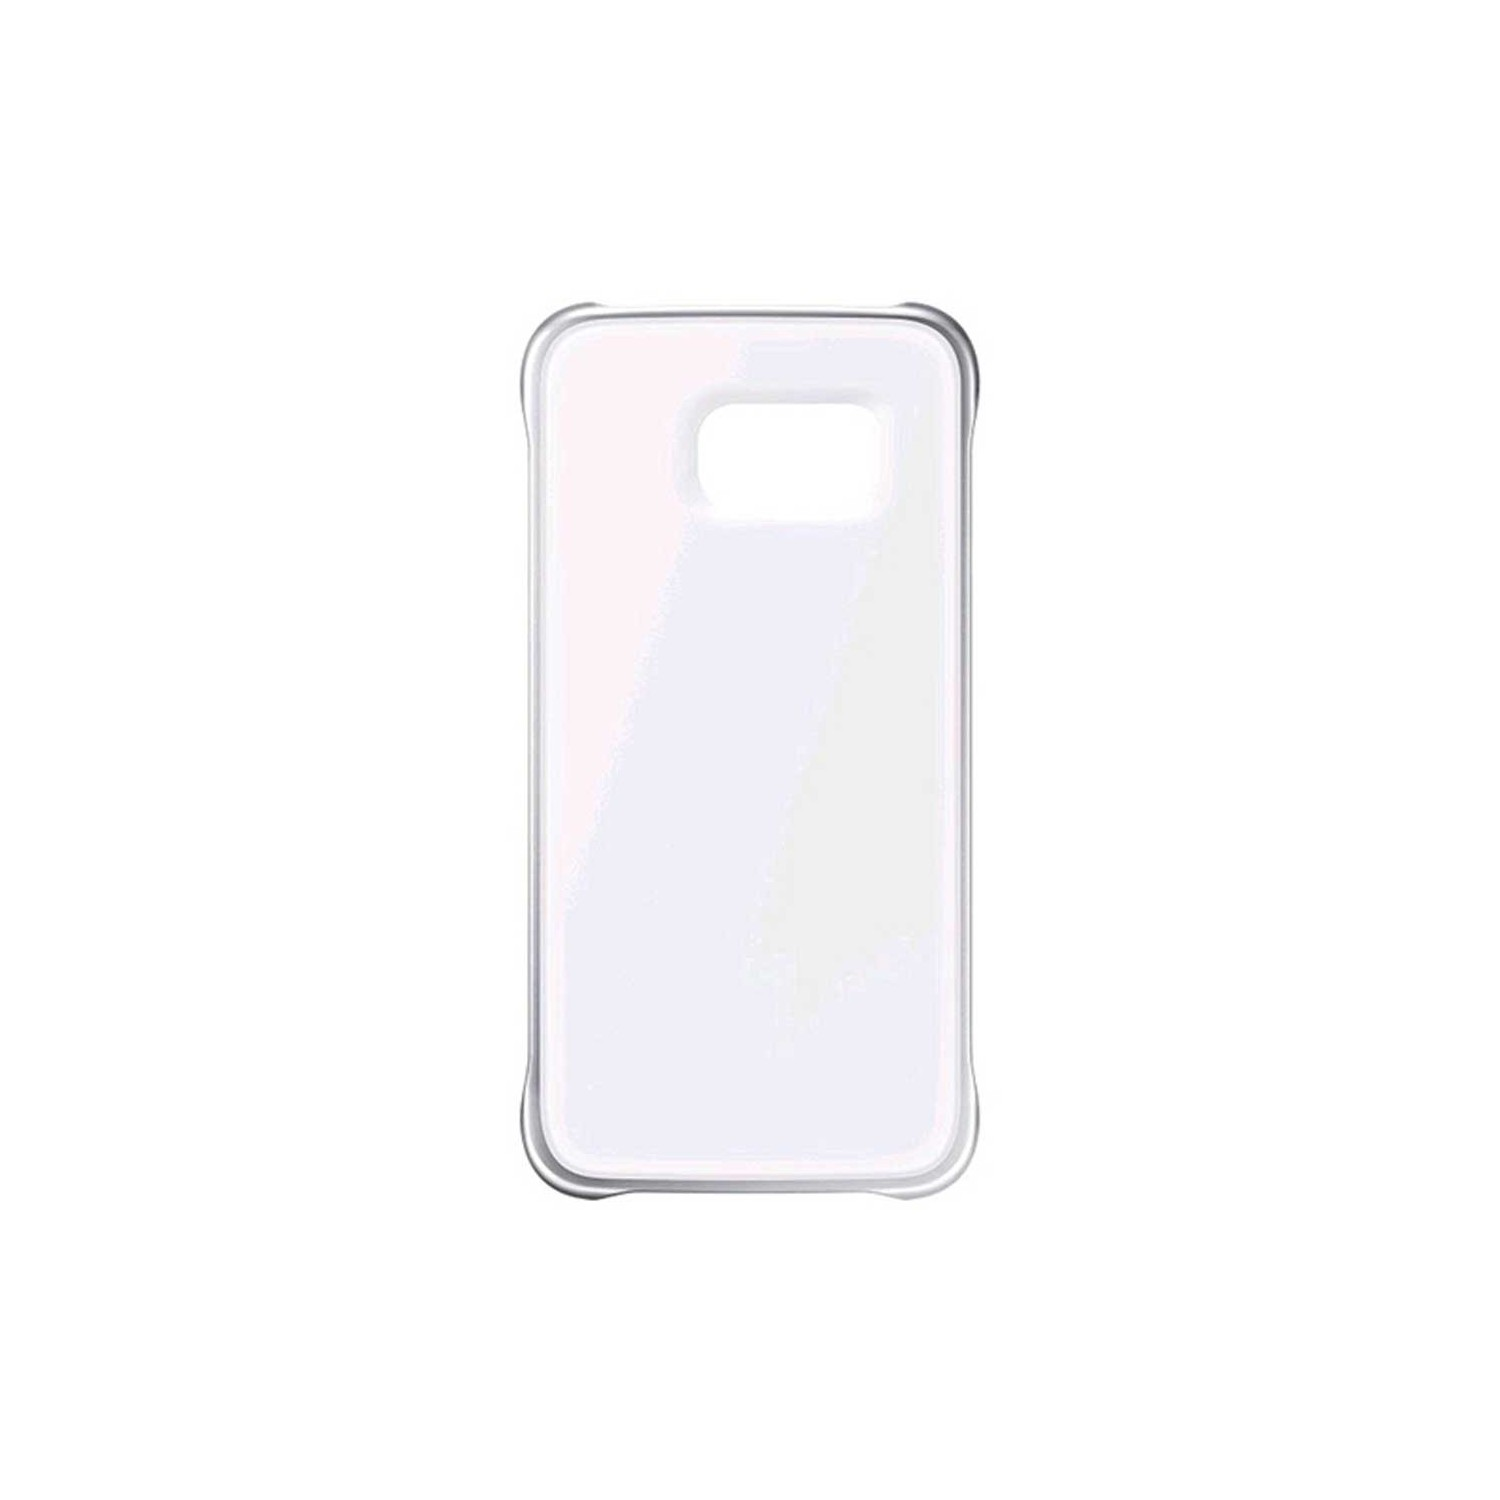 Case - Galaxy S6 EDGE Protective cover Clear Silver